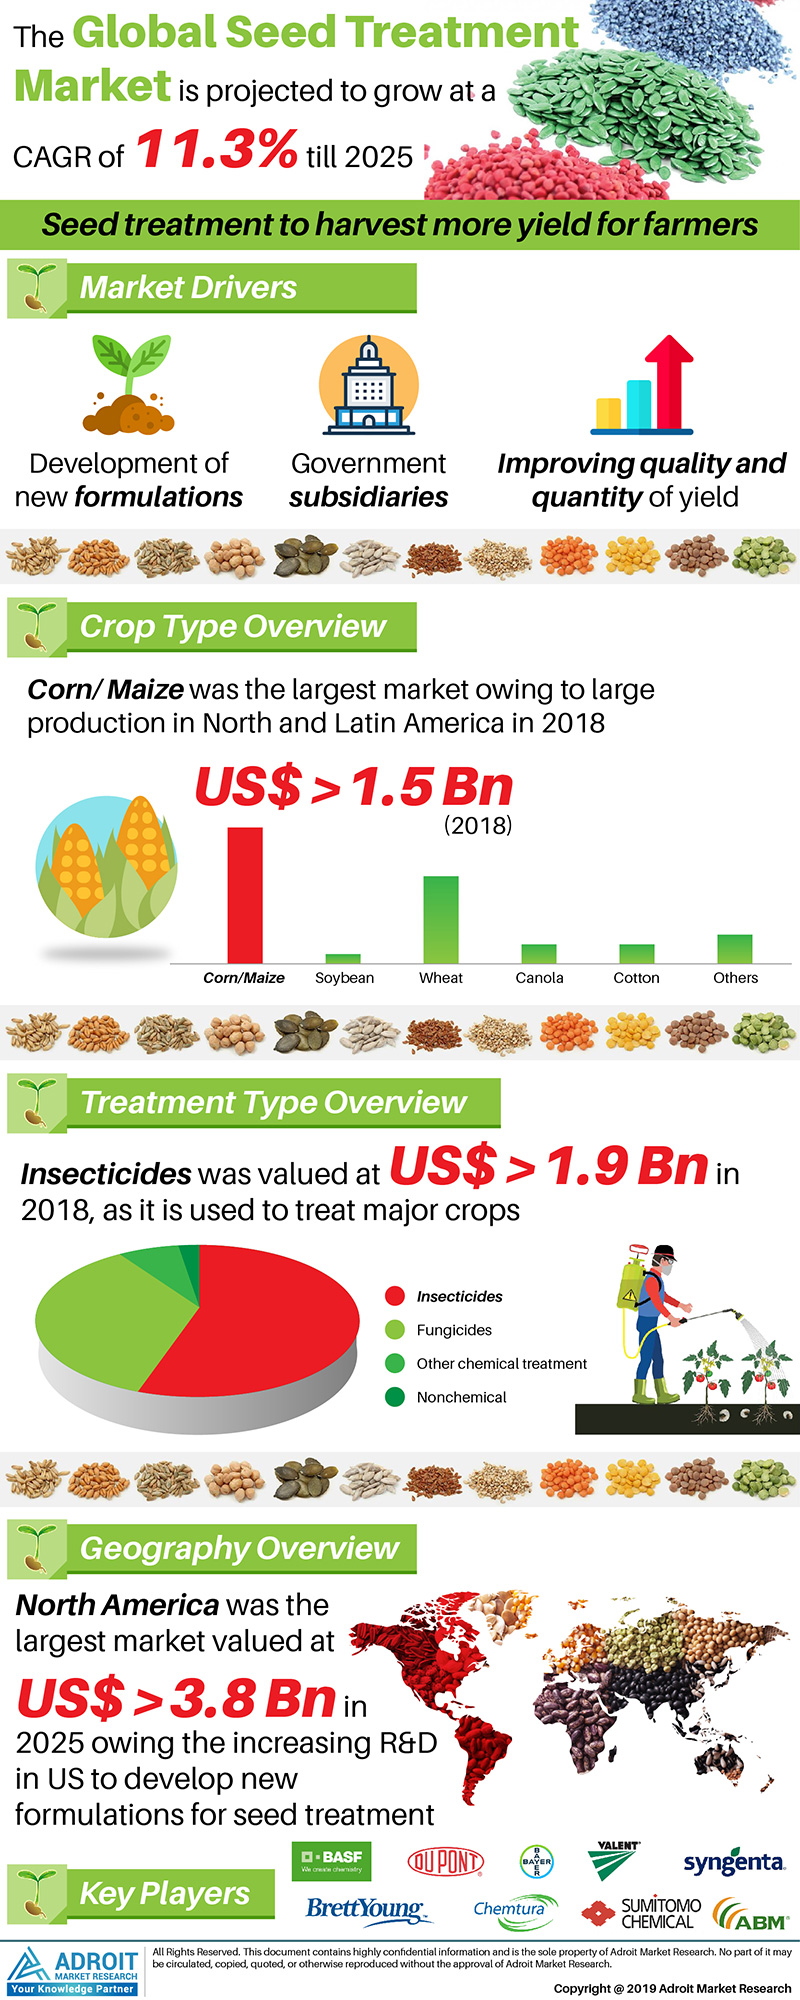 Global Seed Treatment Market Size By Crop Type, Treatment, Region, Trends and Forecast 2018 to 2025